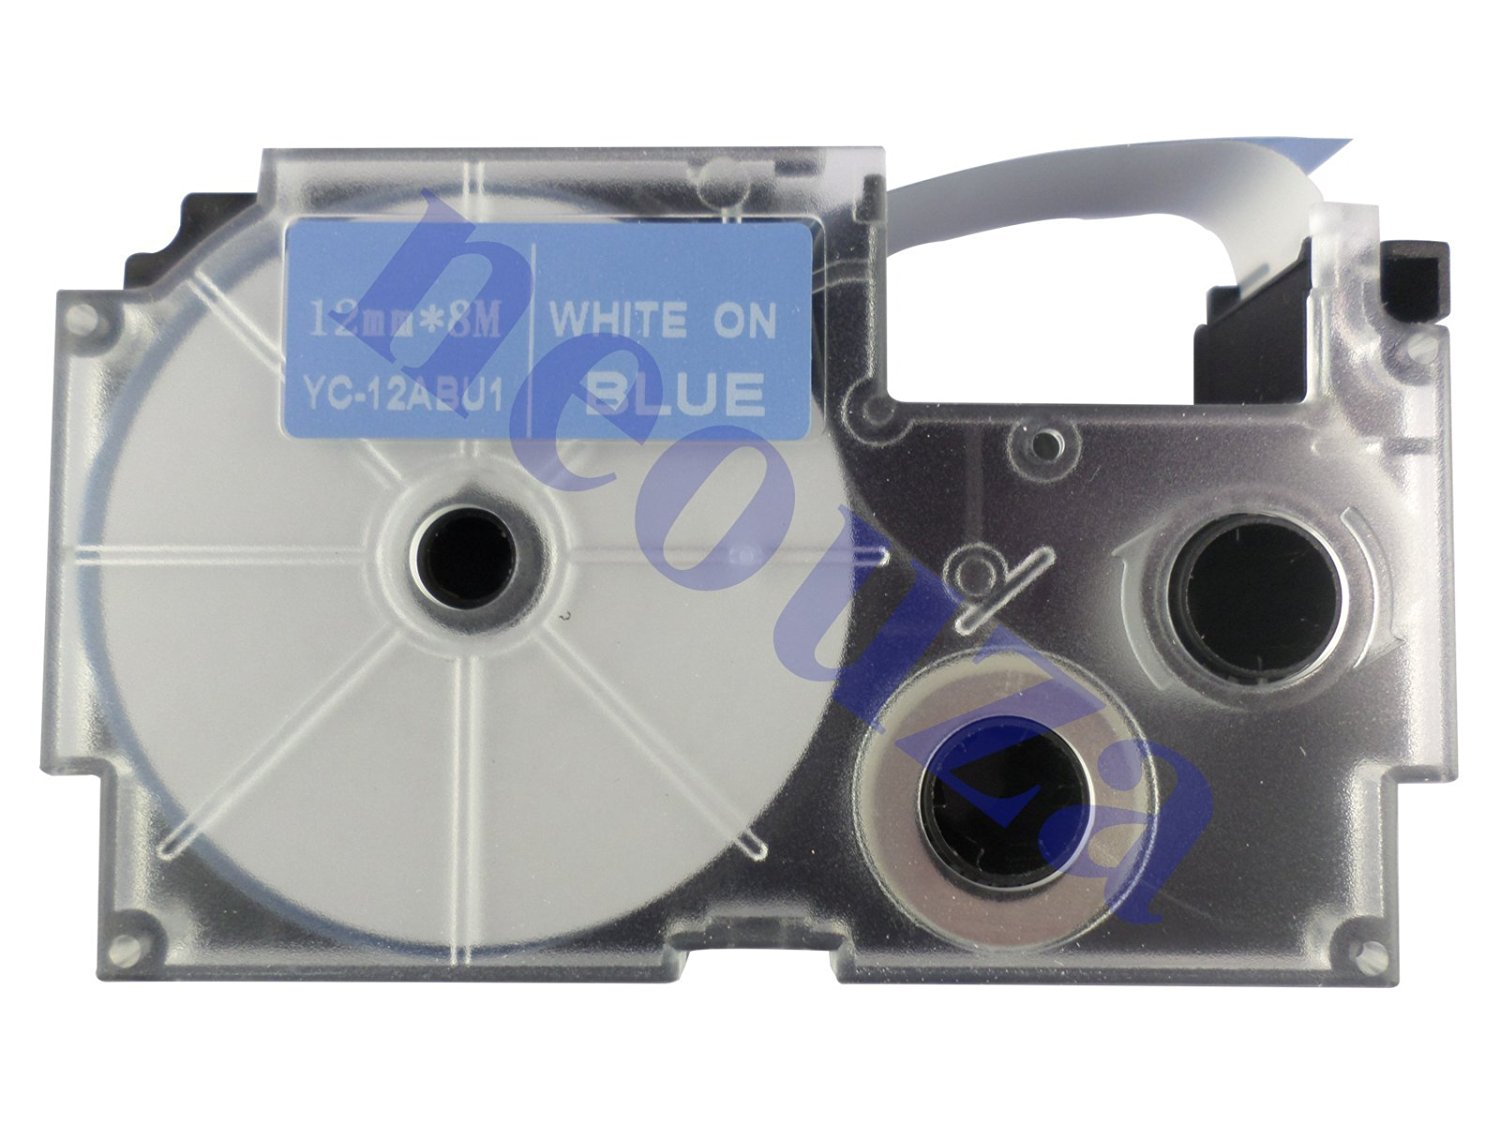 Compatible for Casio EZ-Label Tape 12mm White on Blue XR-12ABU1 8m LABEL IT!